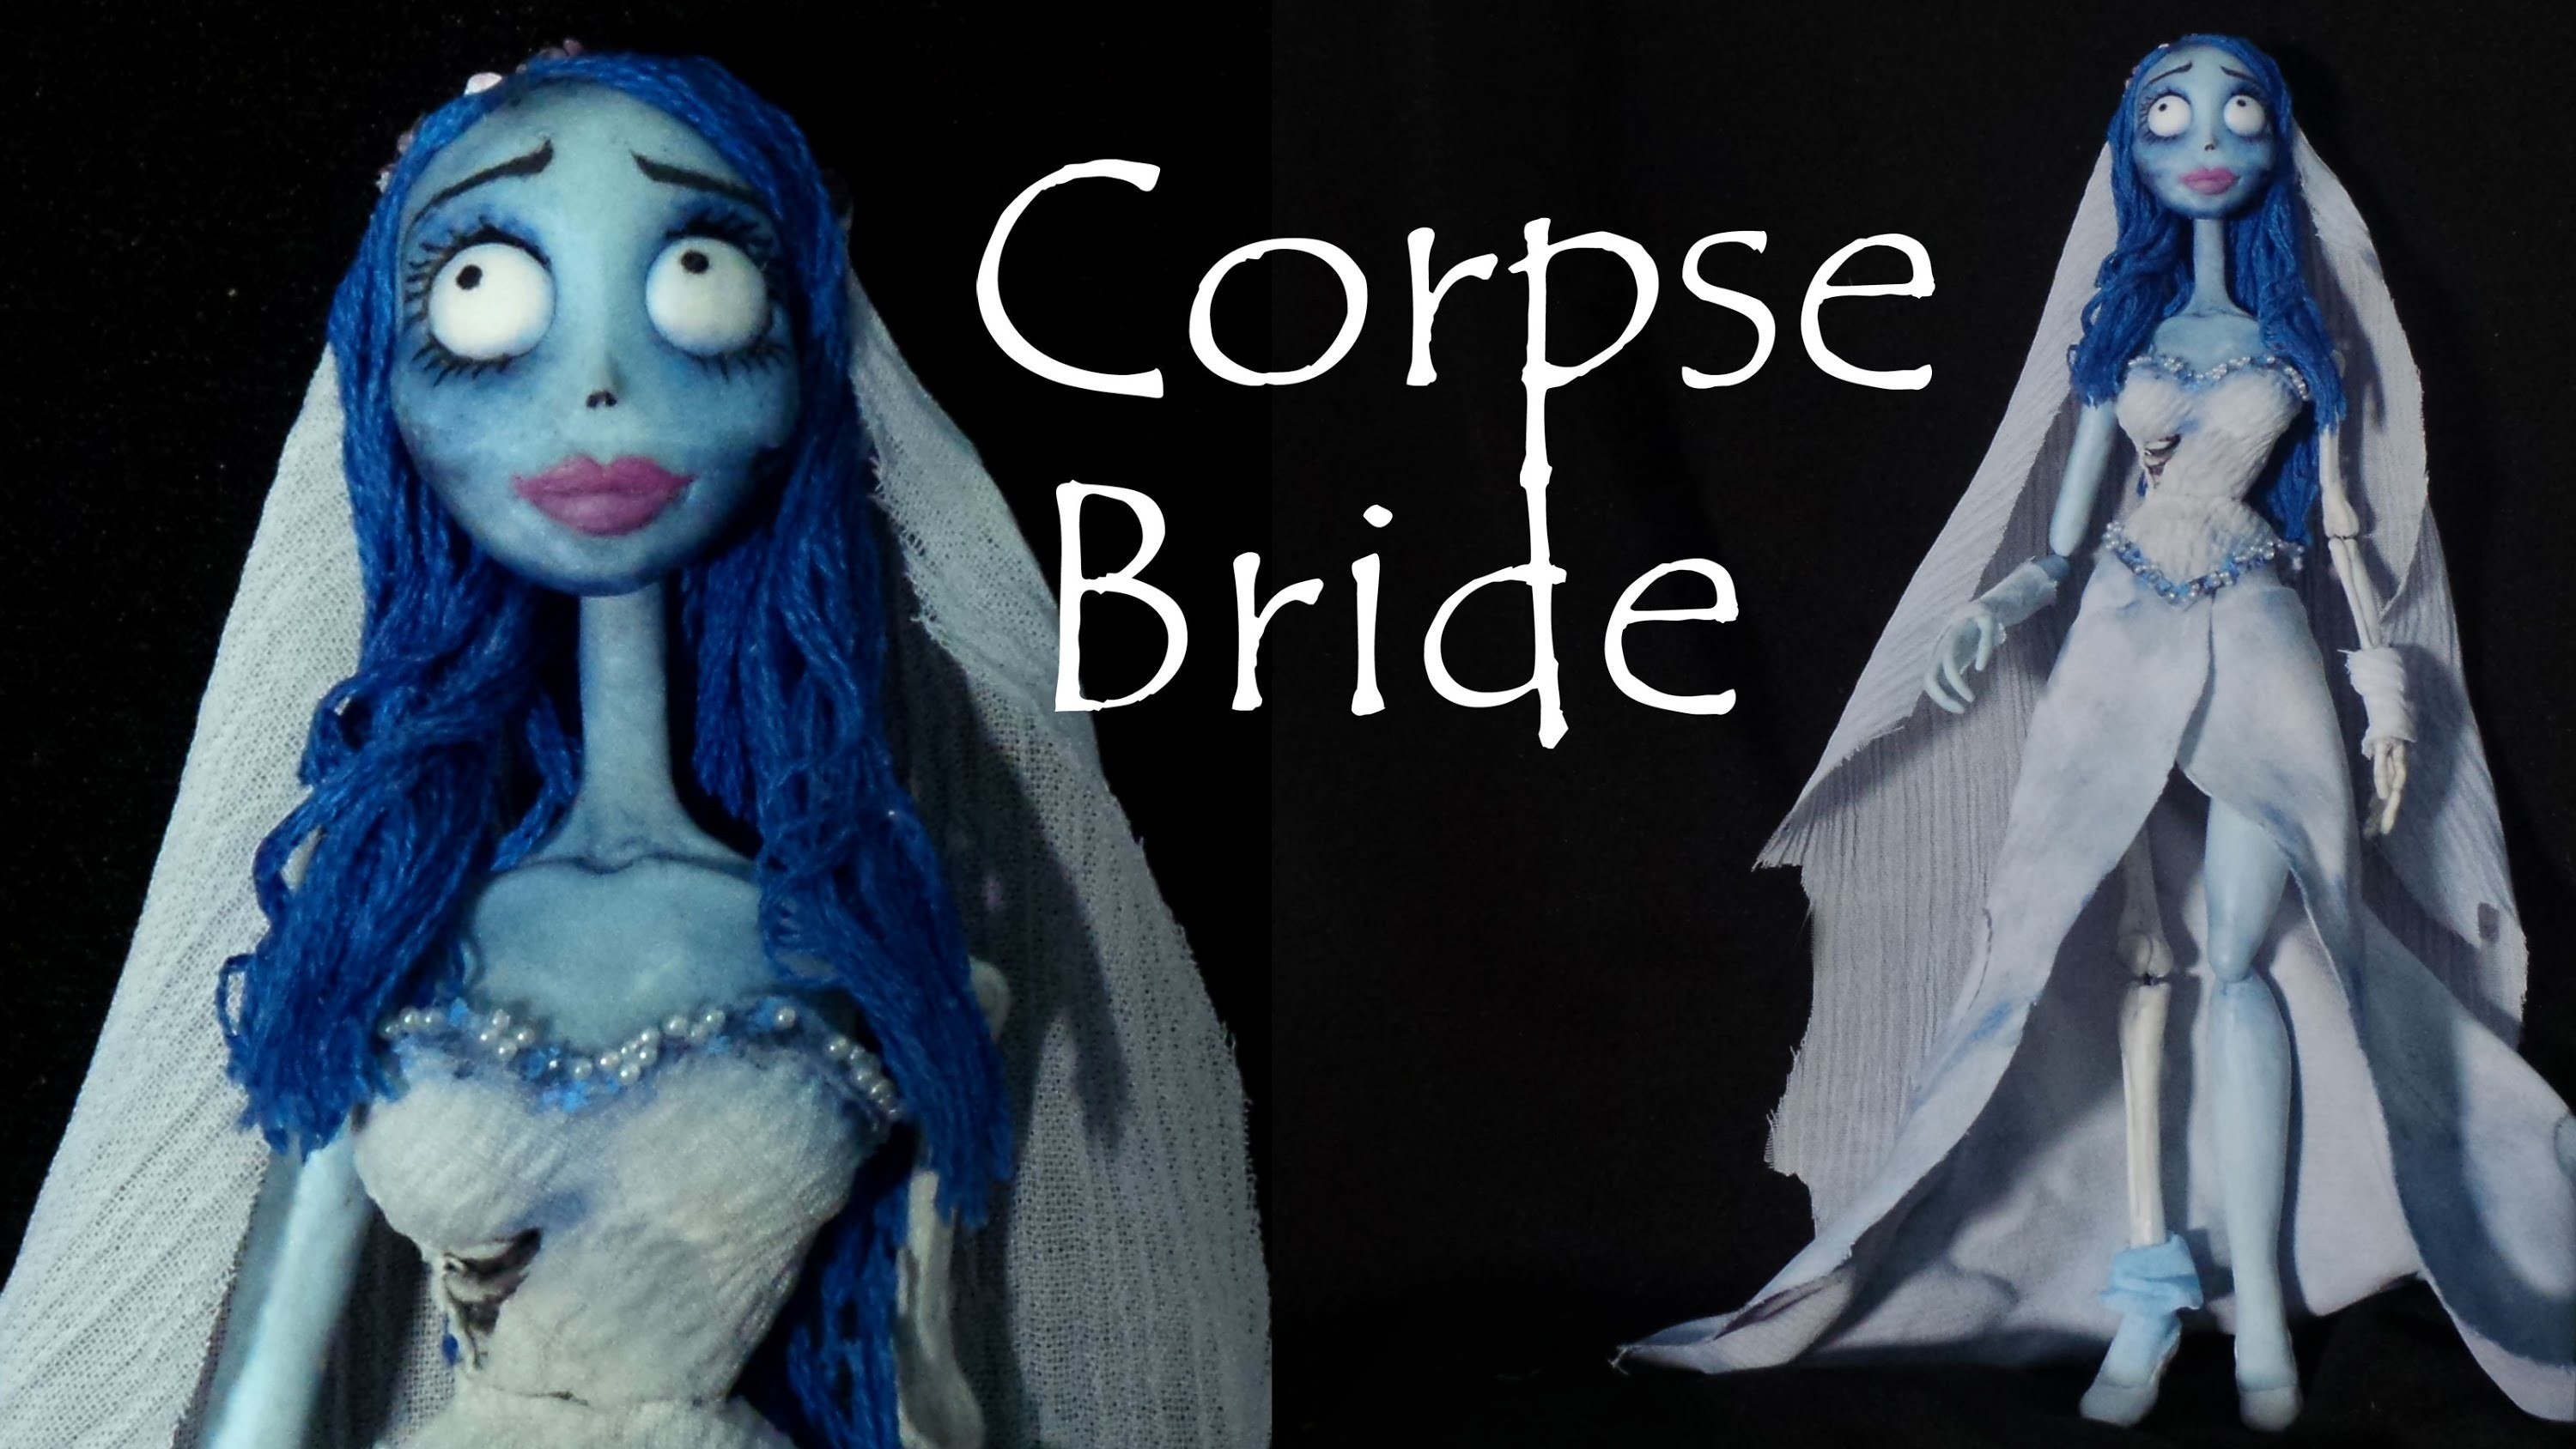 Corpse Bride Inspired (Poseable) Doll - Polymer Clay Tutorial